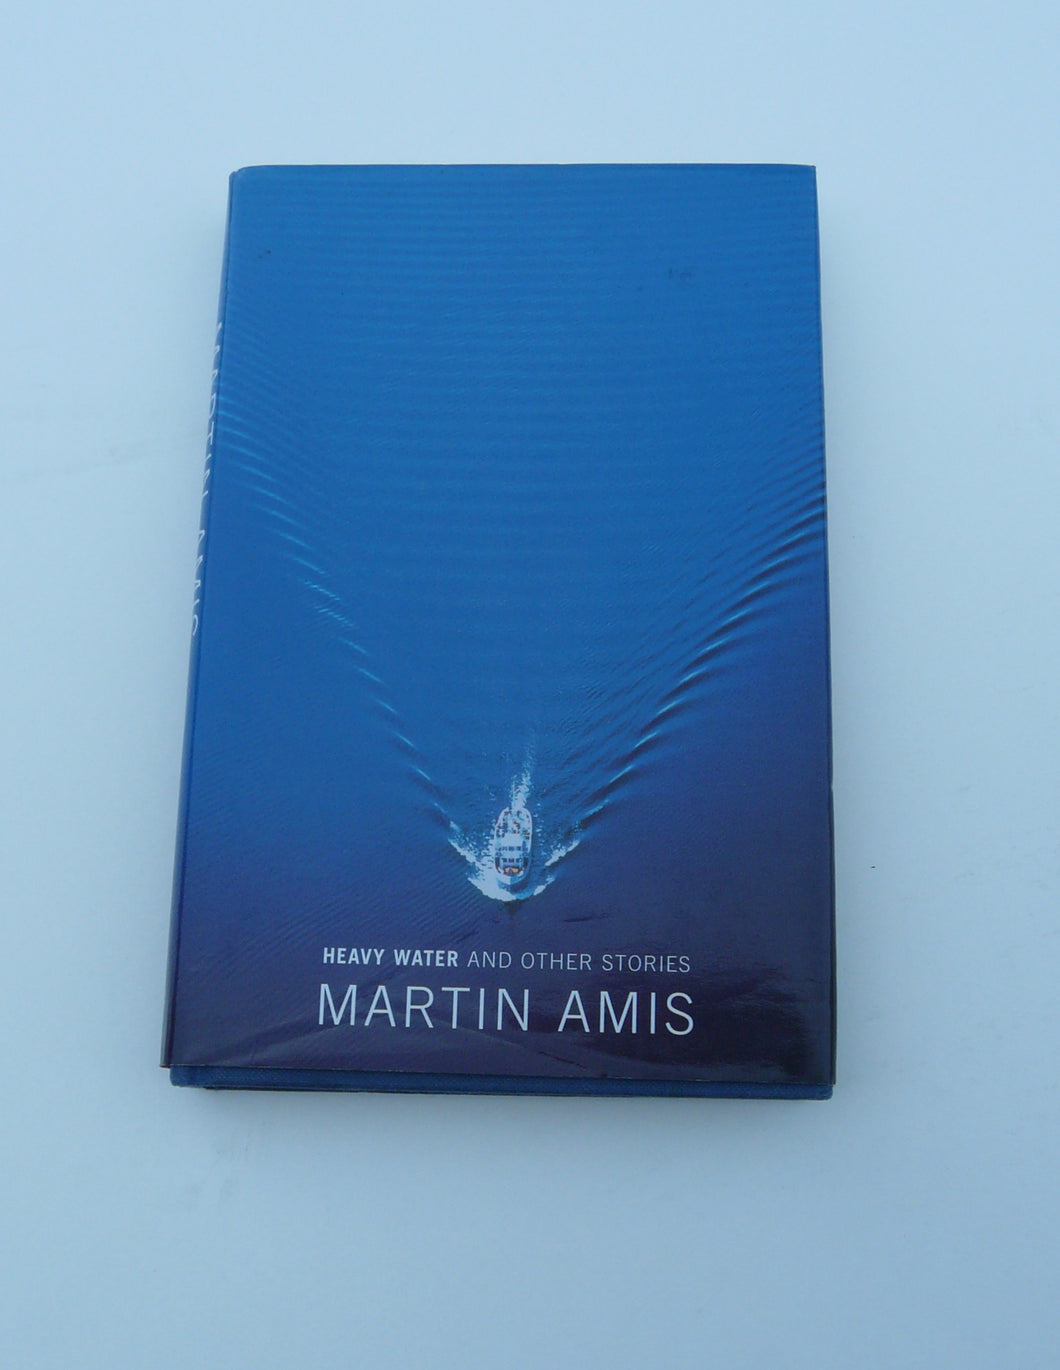 Heavy Water and Other Stories by Martin Amis - Everlasting Editions